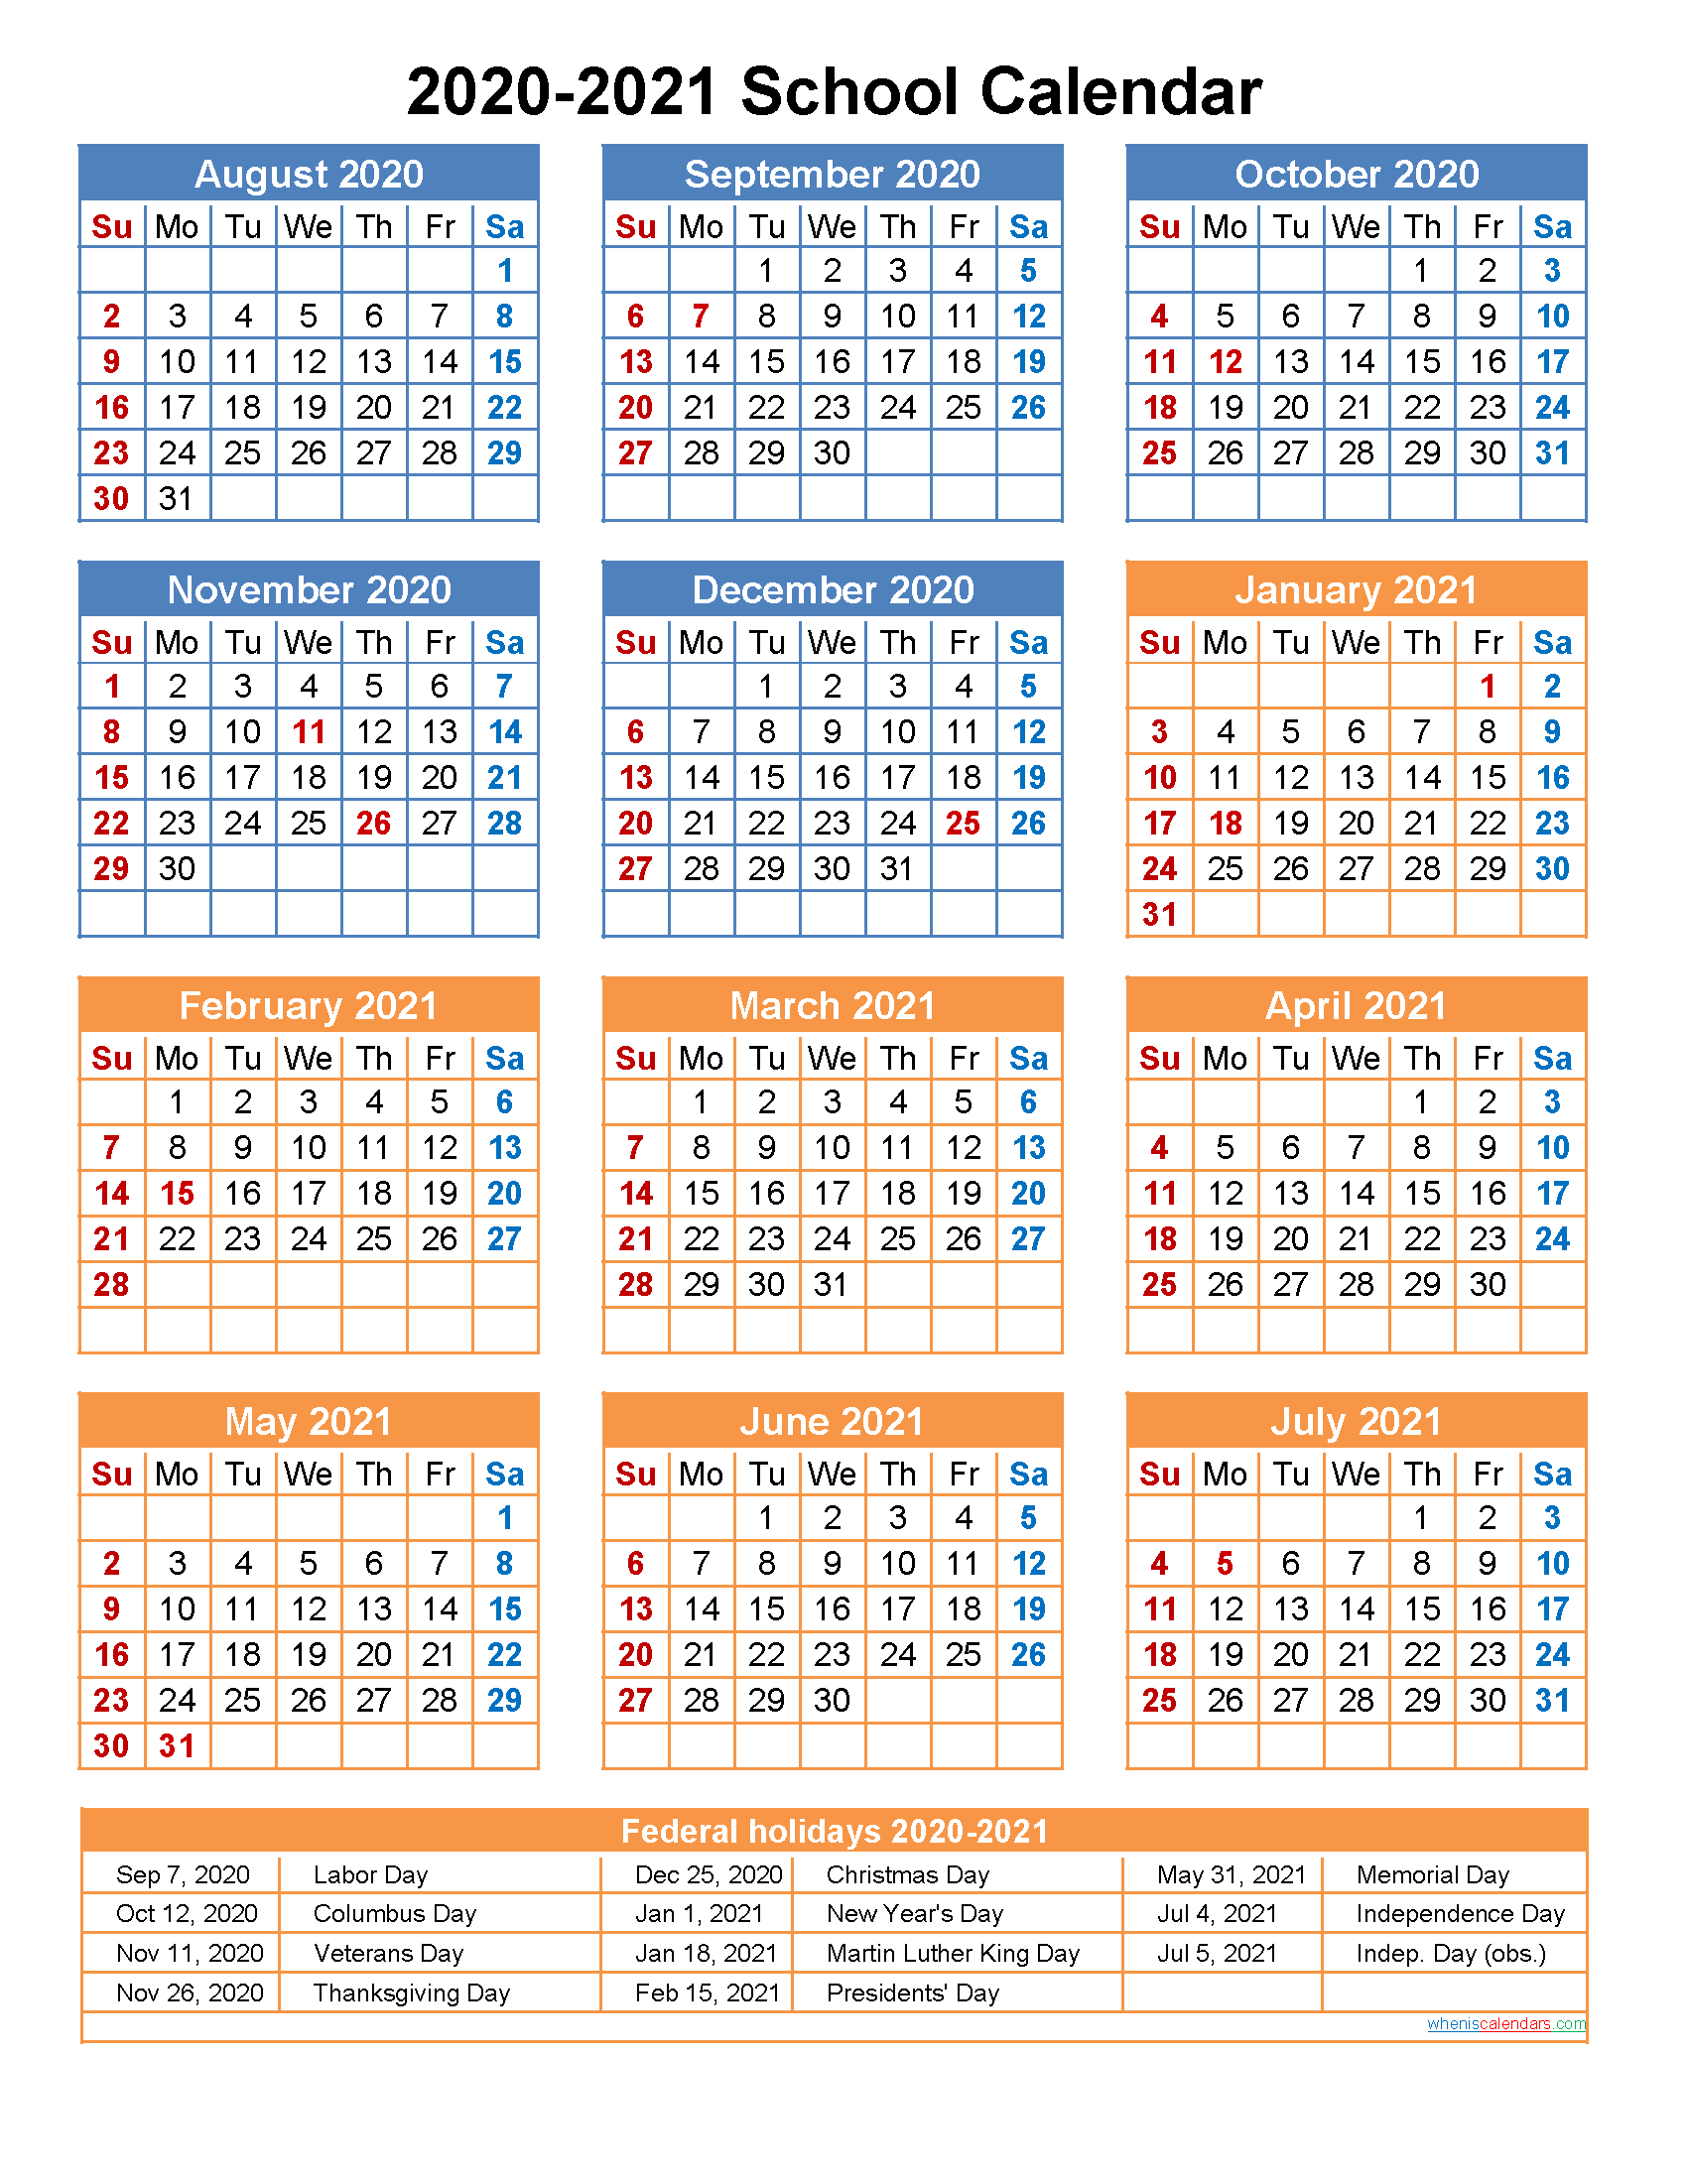 2020 And 2021 Calendar Printable 2020 and 2021 School Calendar Printable (Portrait)  Template No